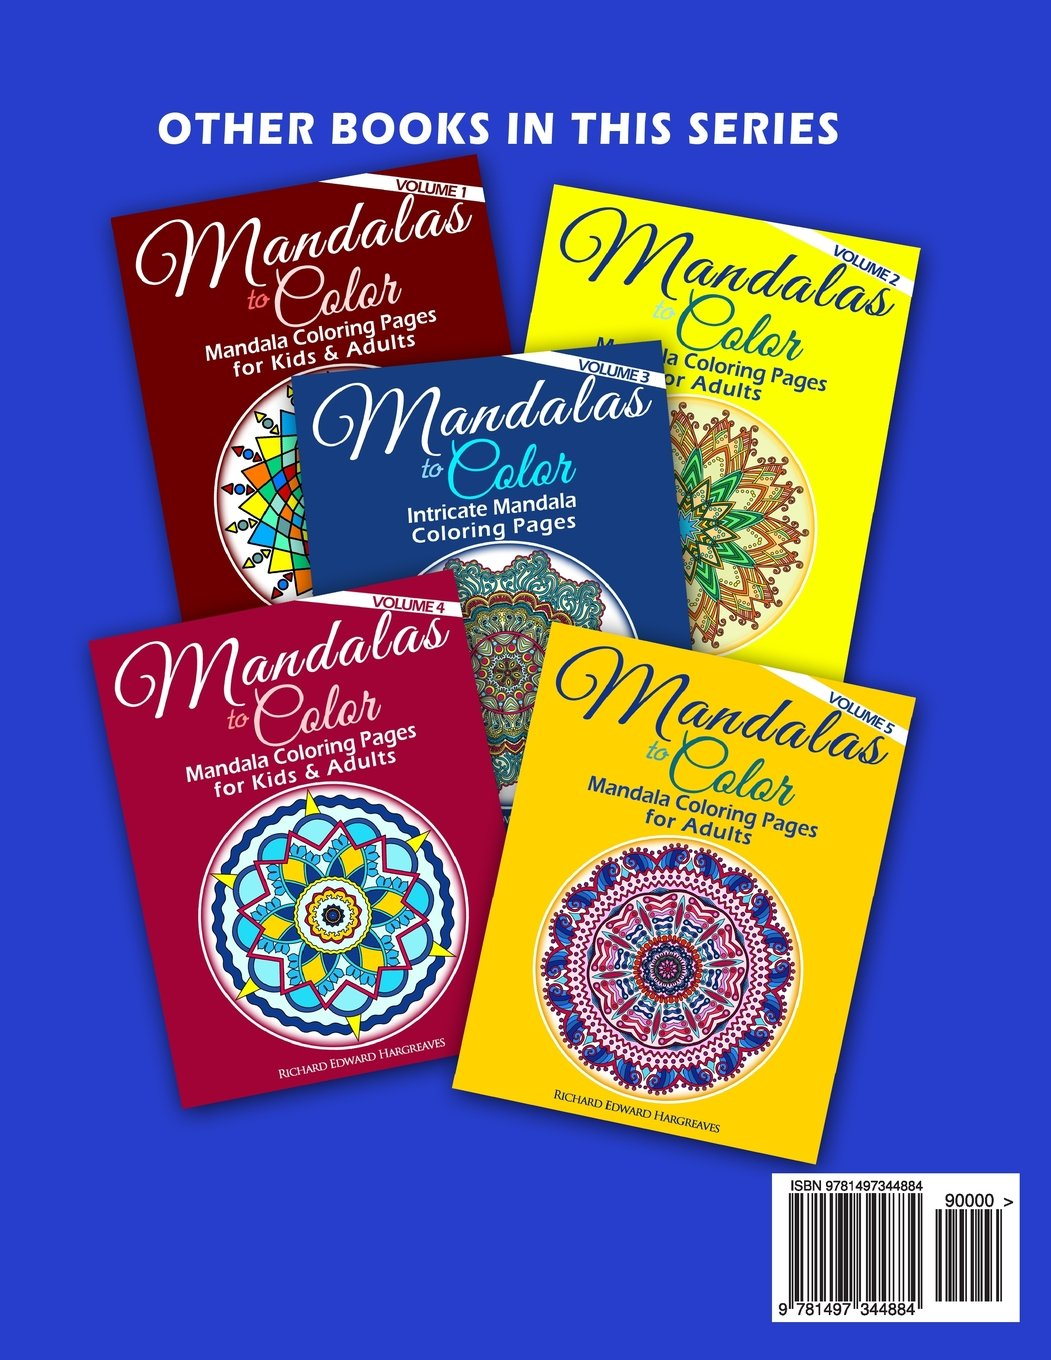 Mandala coloring pages amazon - Amazon Com Mandalas To Color Intricate Mandala Coloring Pages Advanced Designs Mandala Coloring Books Volume 6 9781497344884 Richard Edward